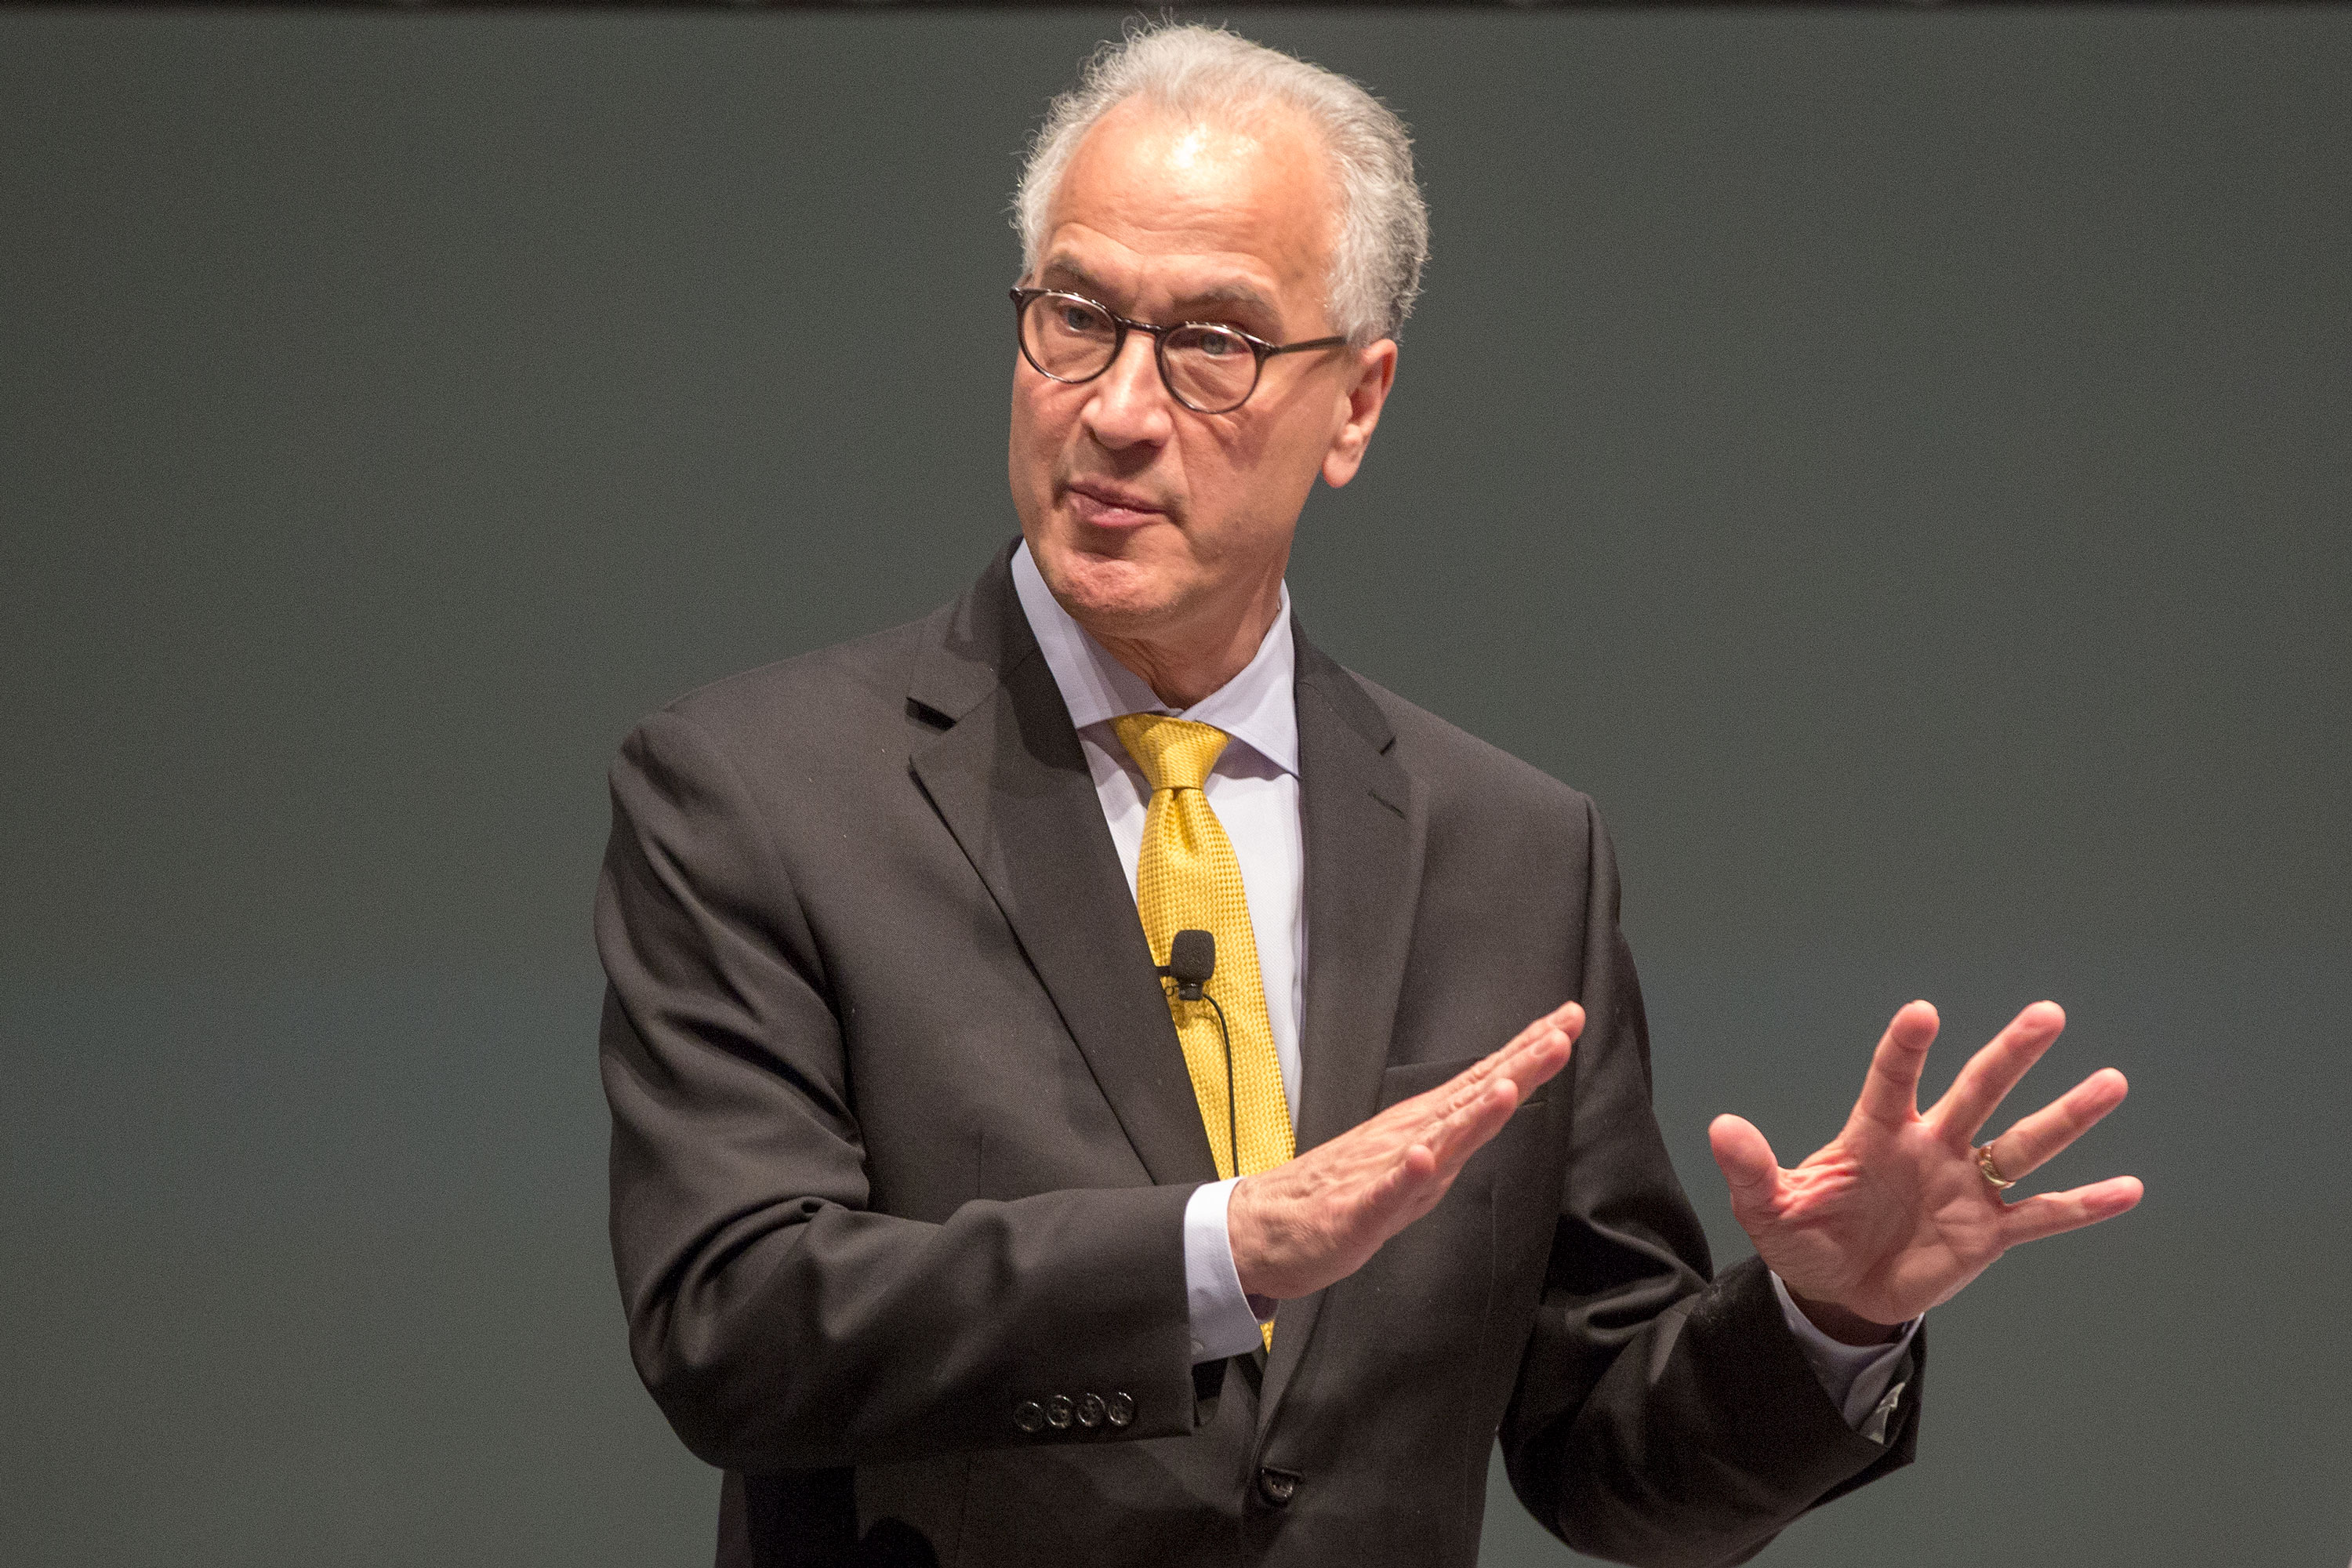 Mark Kennedy answers audience questions Wednesday, April 24, 2019, at the CU Anschutz Medical Campus. Kennedy is the only finalist for the position of president at the University of Colorado. He's visiting all the campuses in the university system.